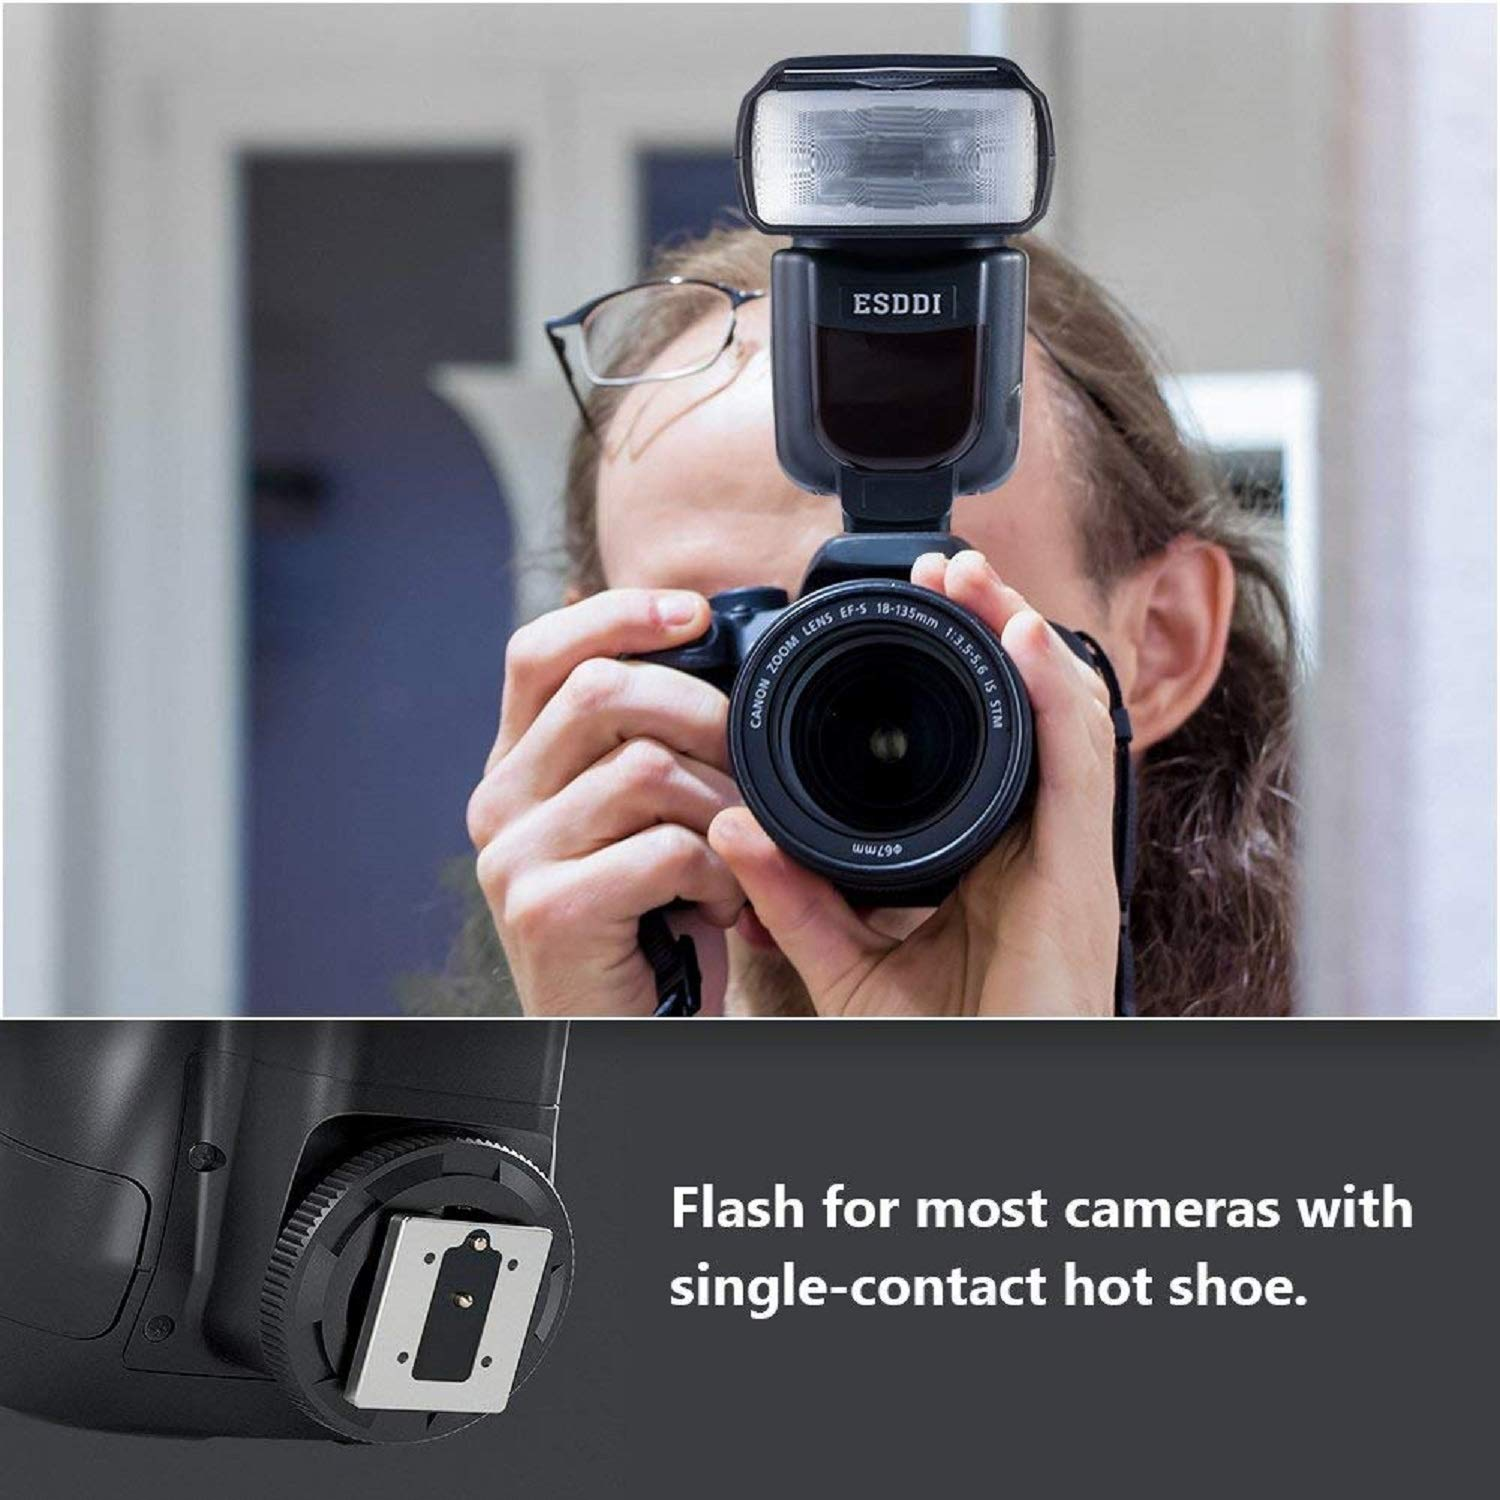 Top 10 Professional Flash Kits For Canon Cameras In 2019 Buyers Guide